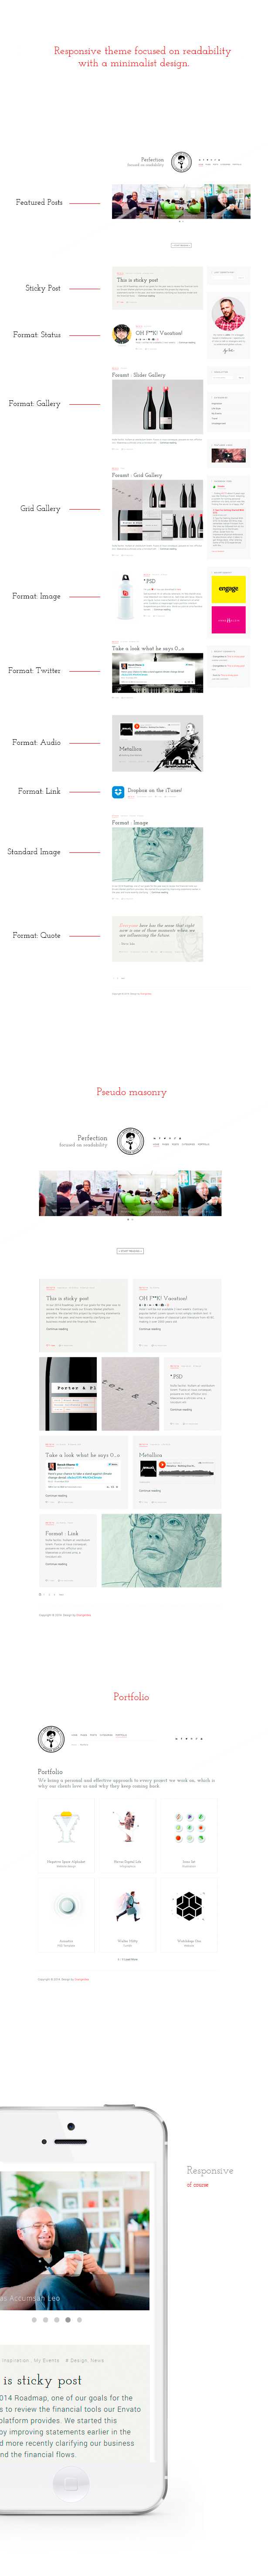 BLG - Minimalistic Template Focused on Readability